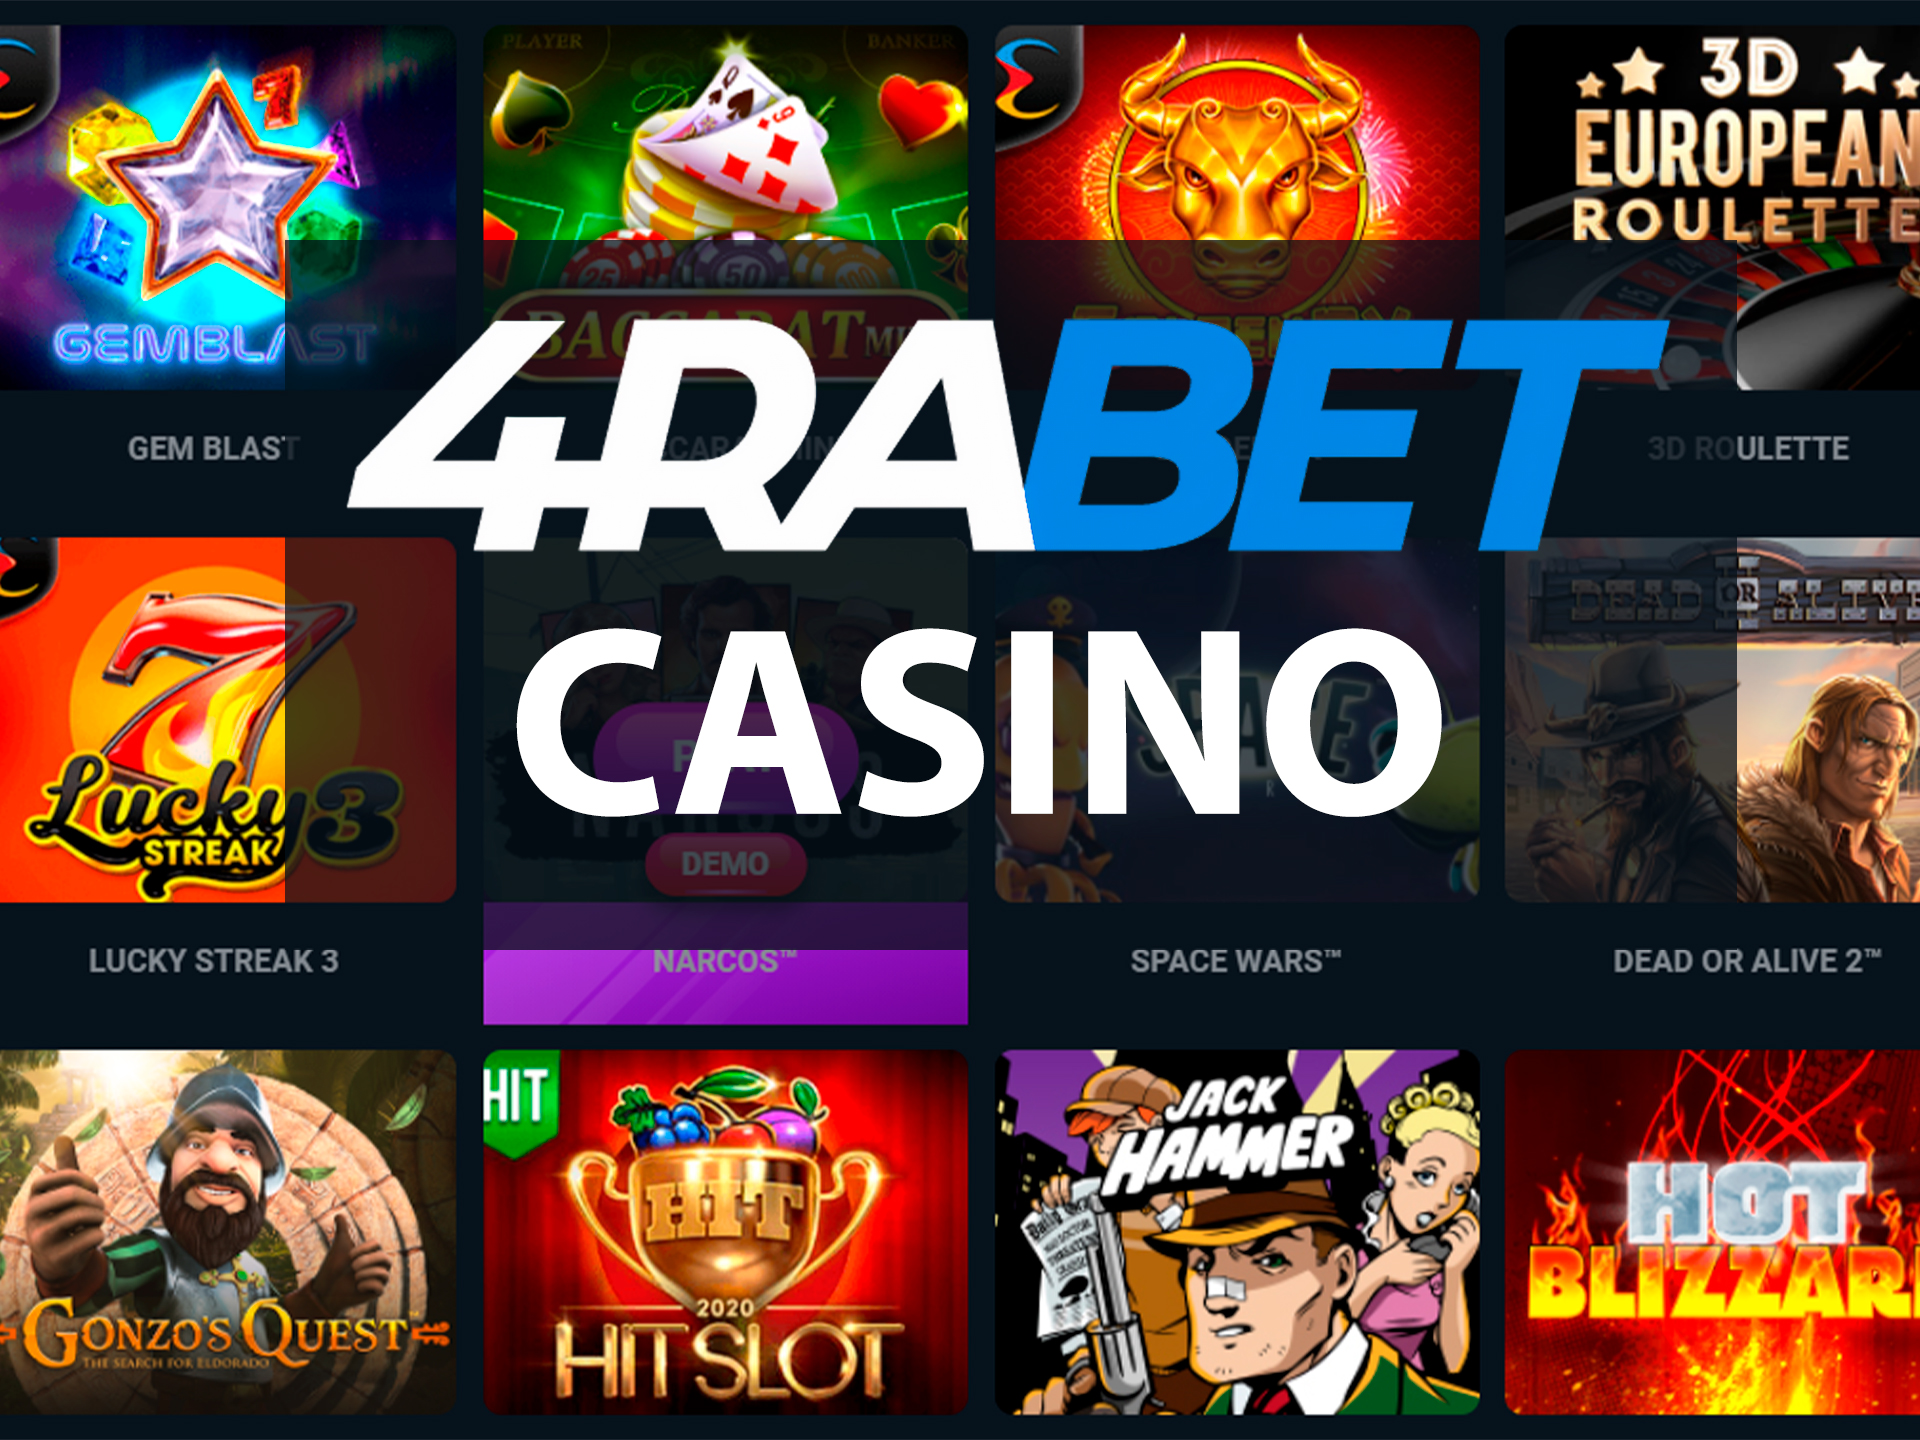 There are many profitable games from trustworthy providers at 4rabet casino.